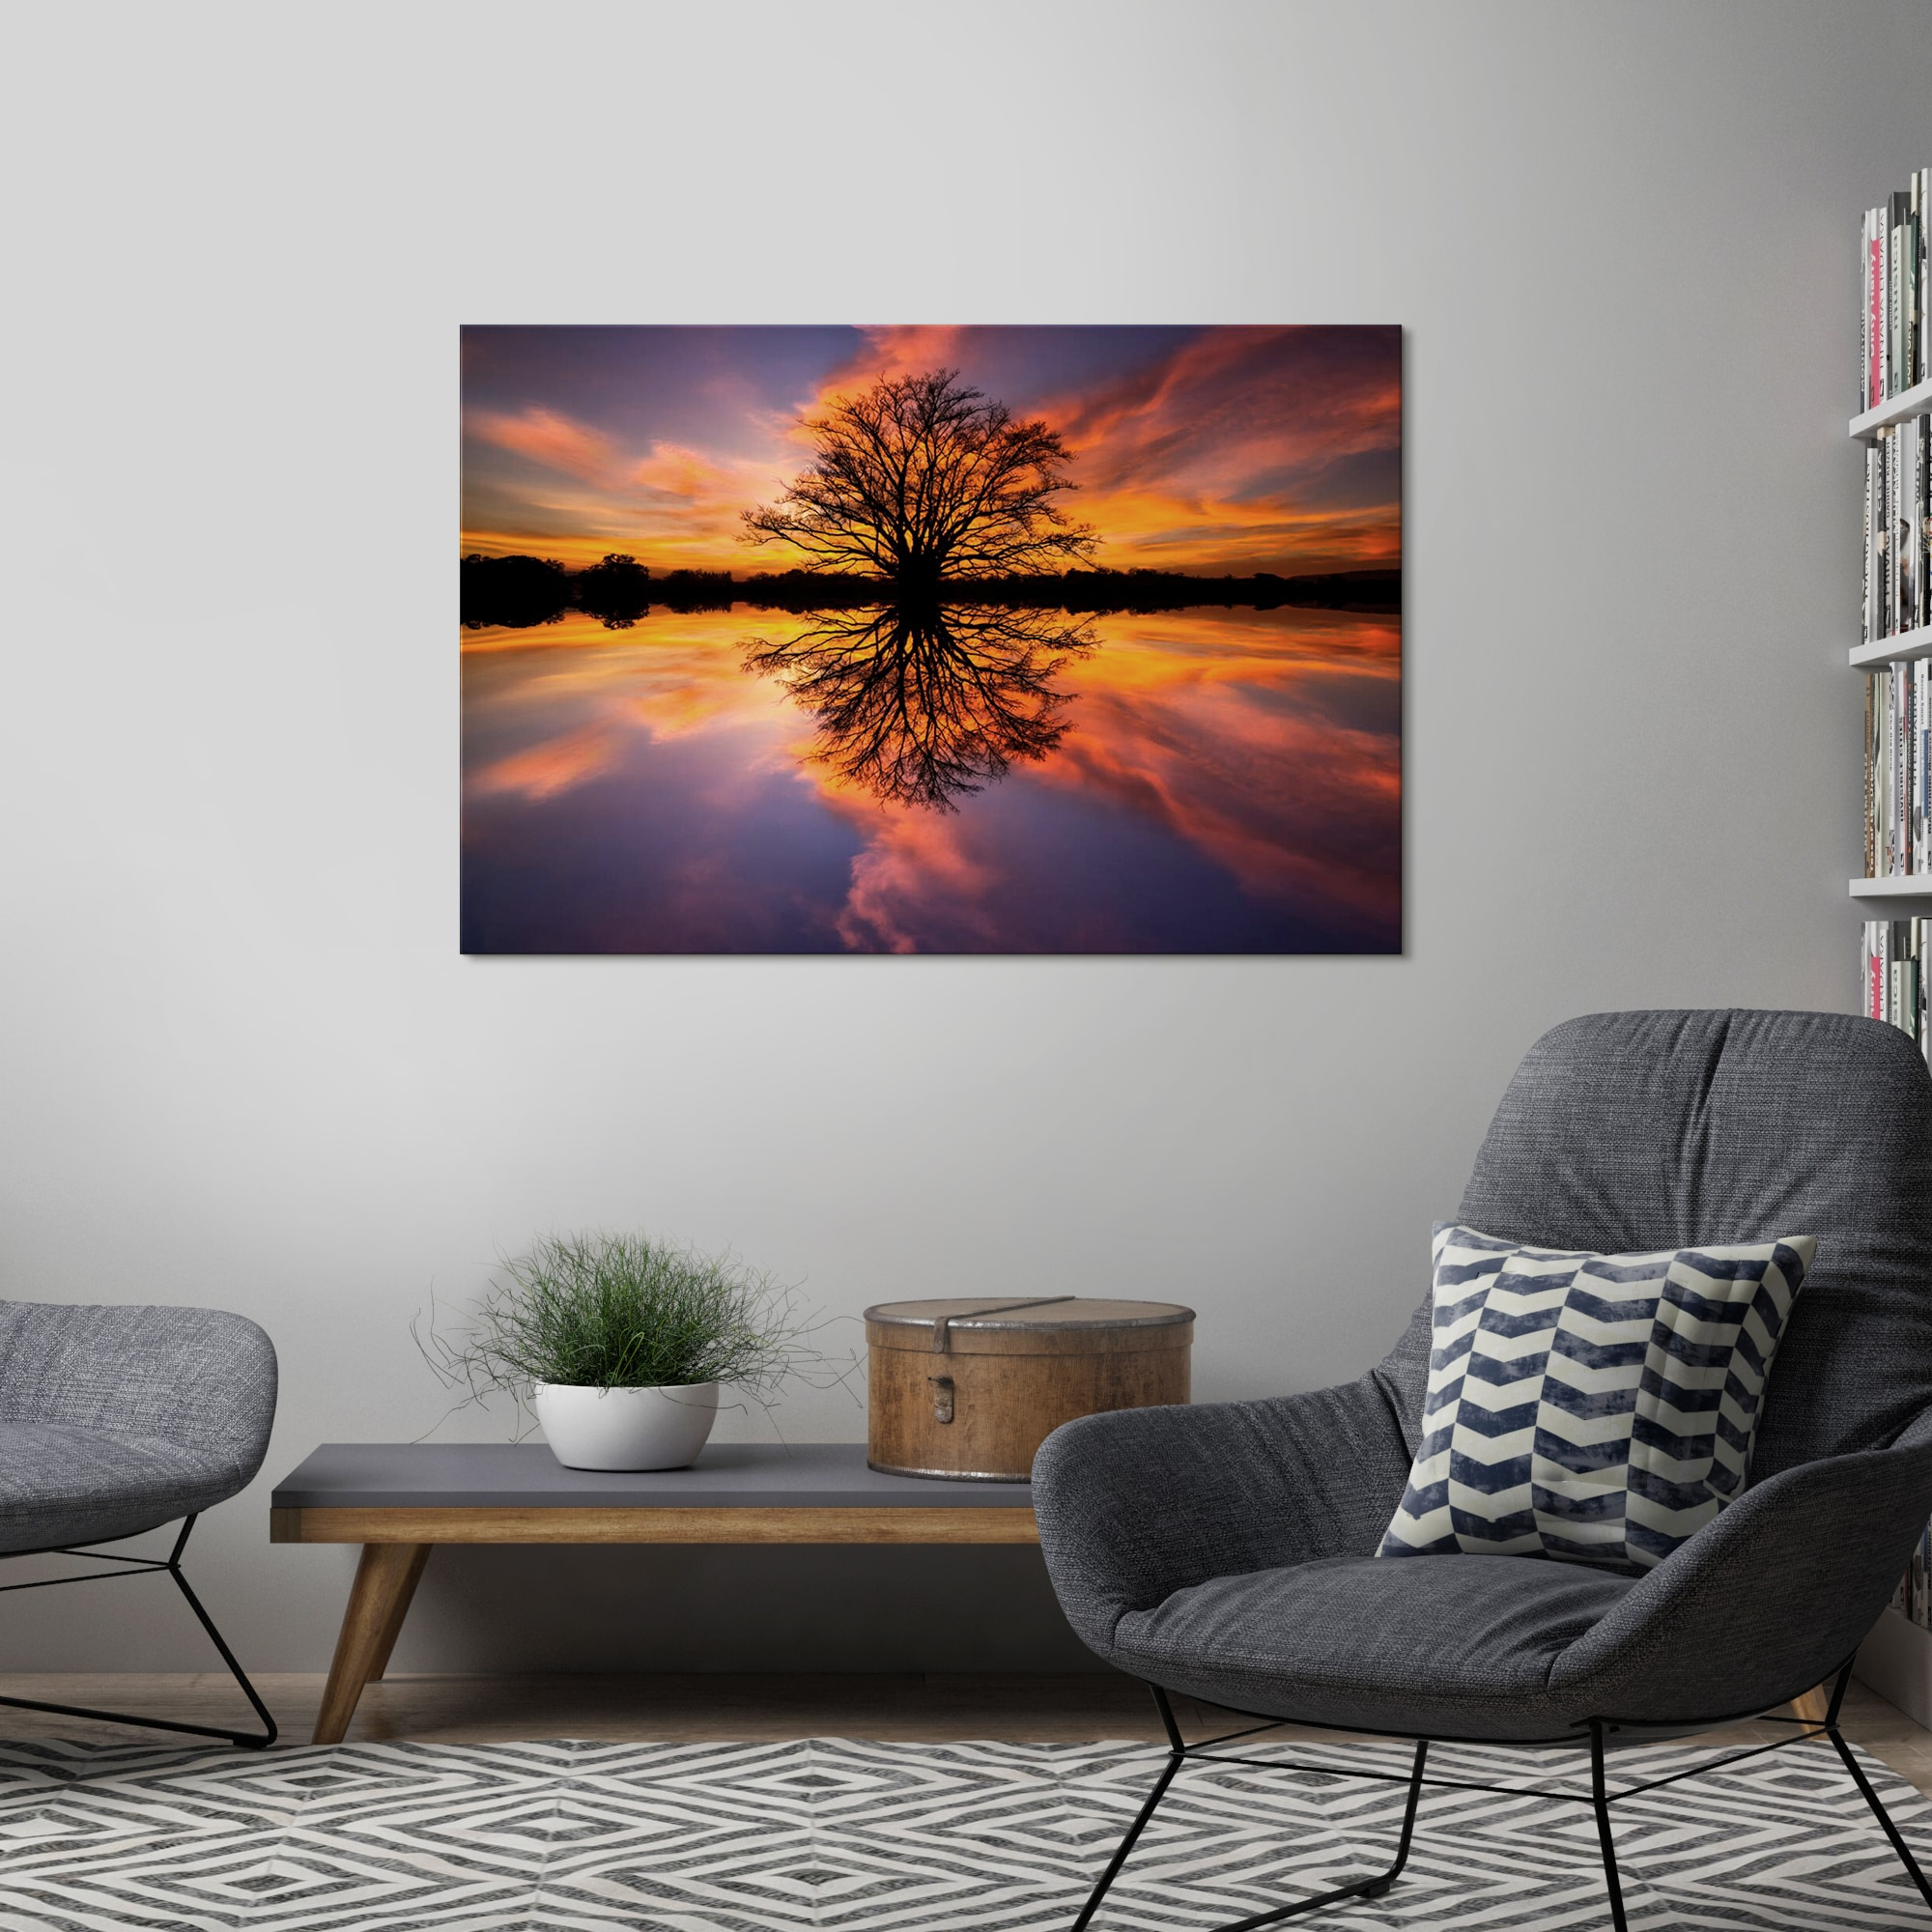 Details About Yosemite Home Decor Balance Tempered Glass Wall Art